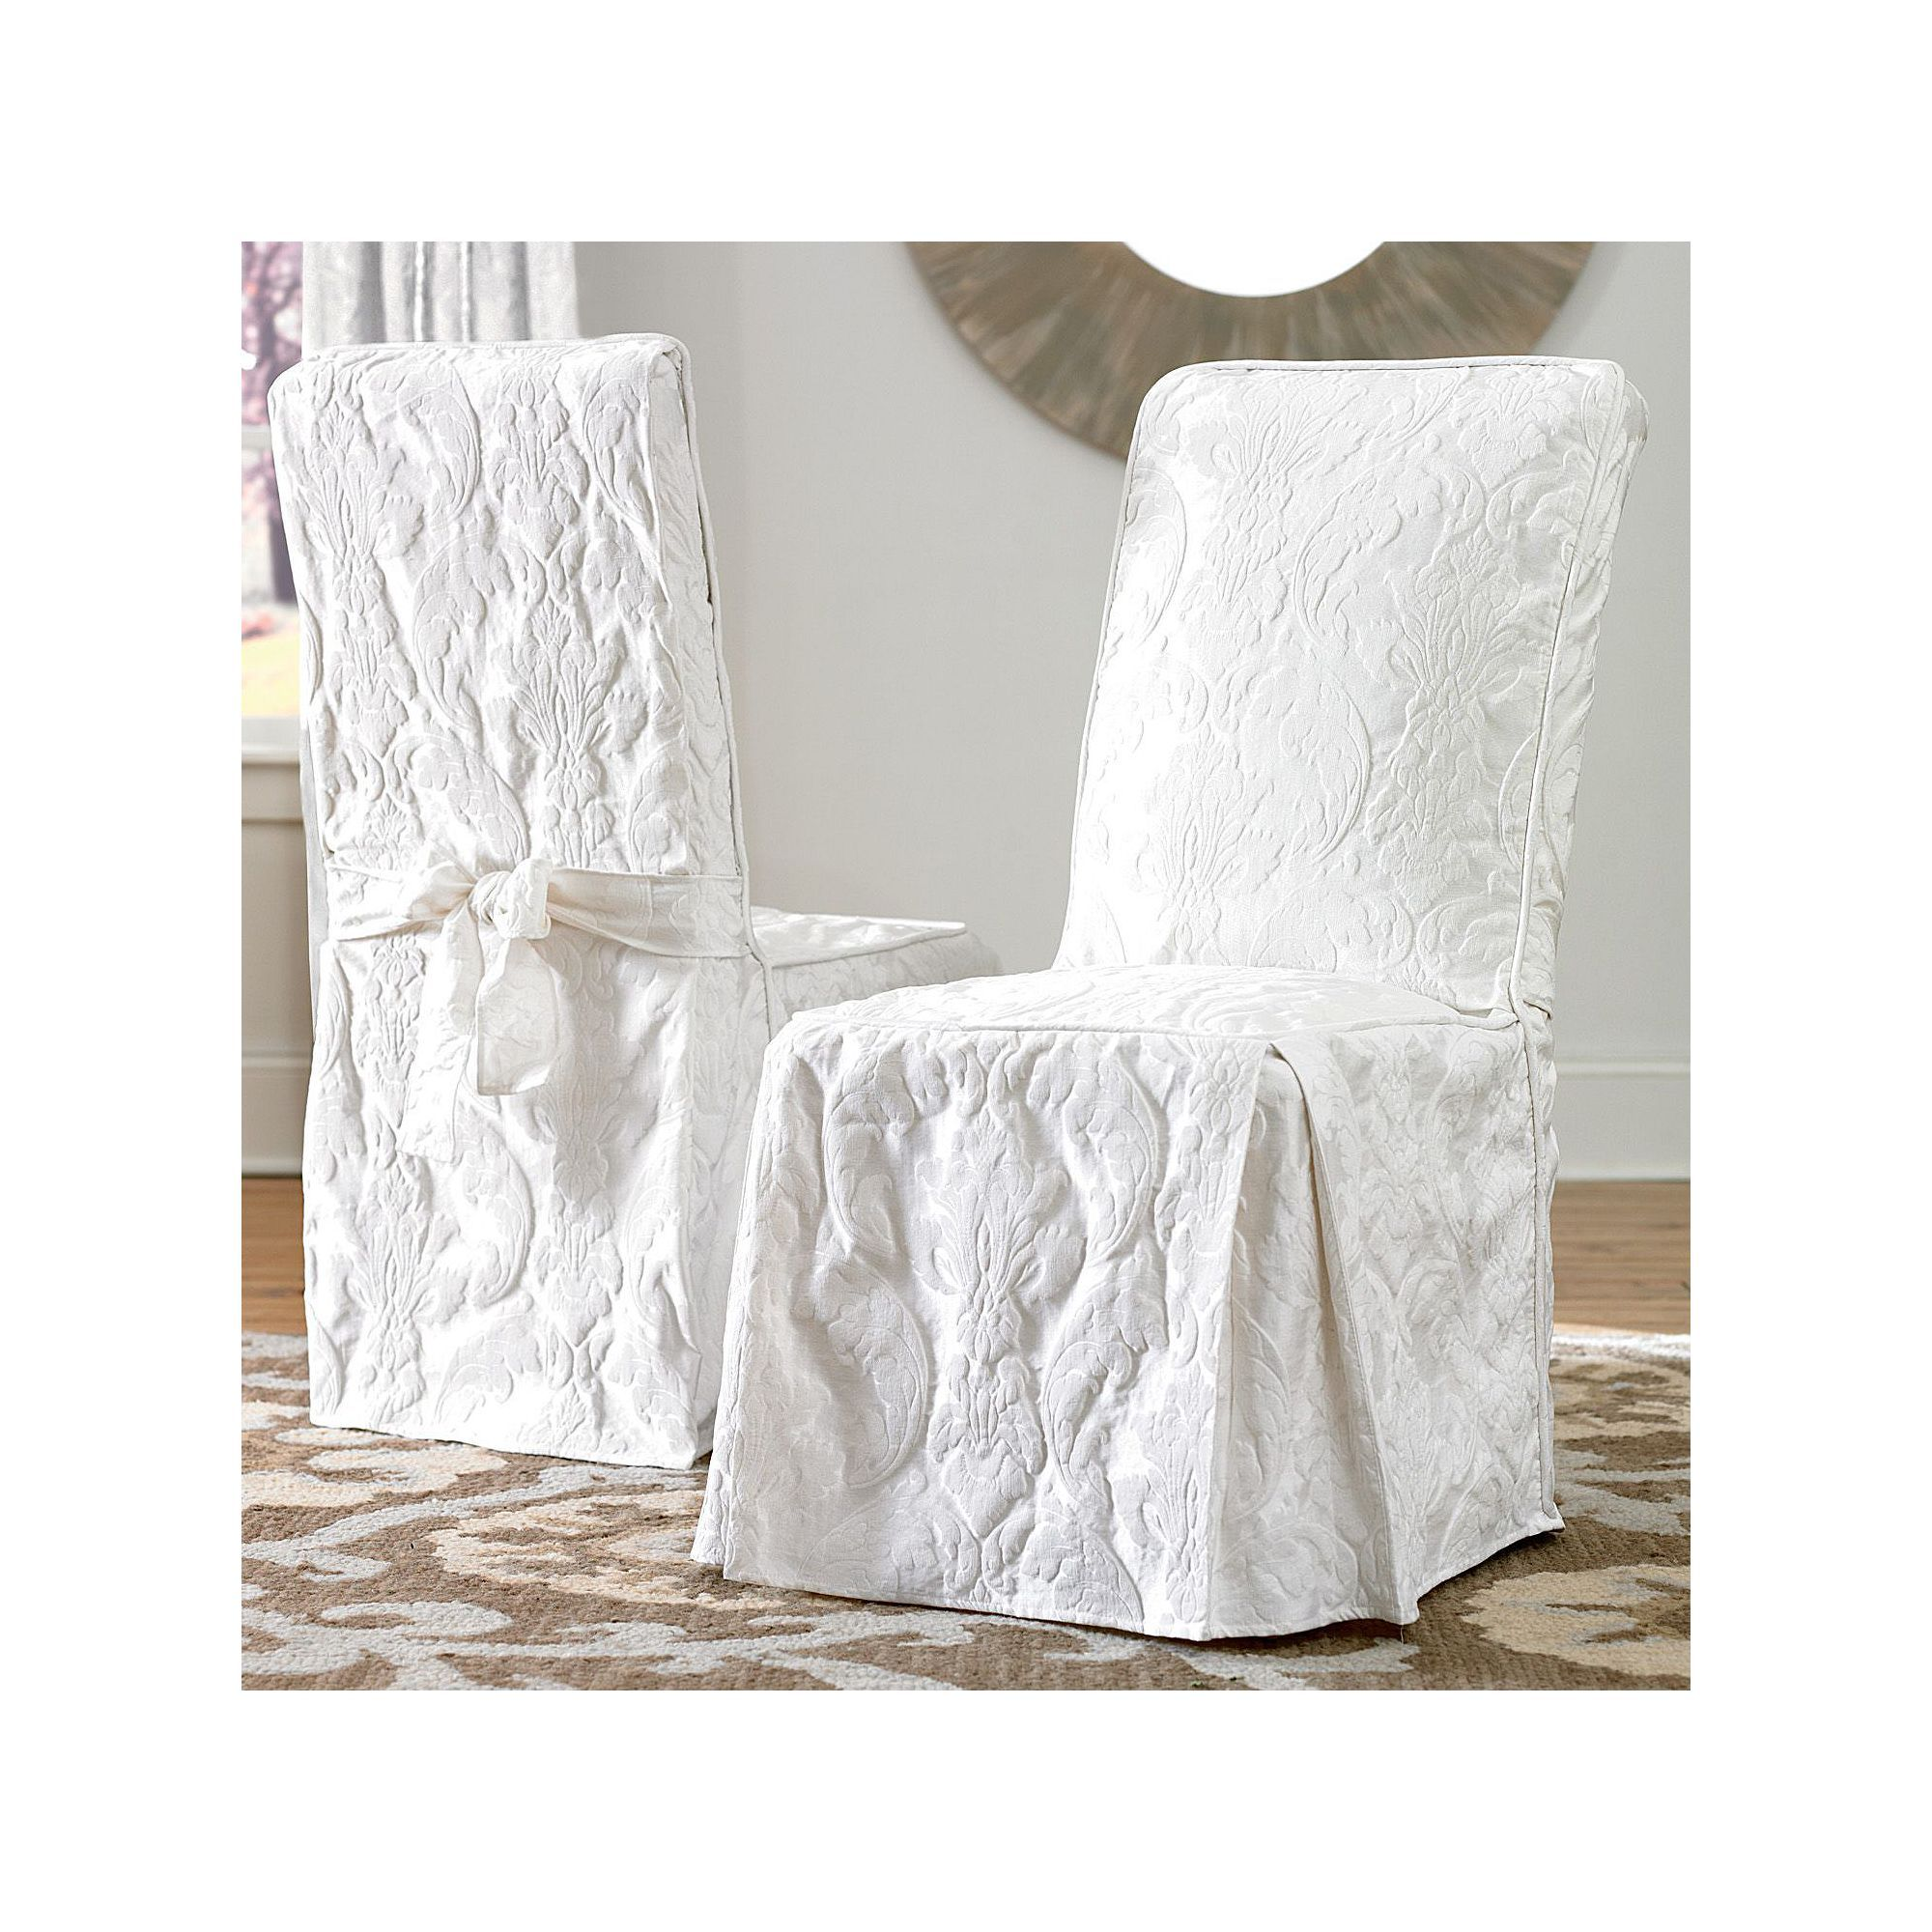 Sure Fit Matelasse Damask Dining Room Chair Slipcover, White